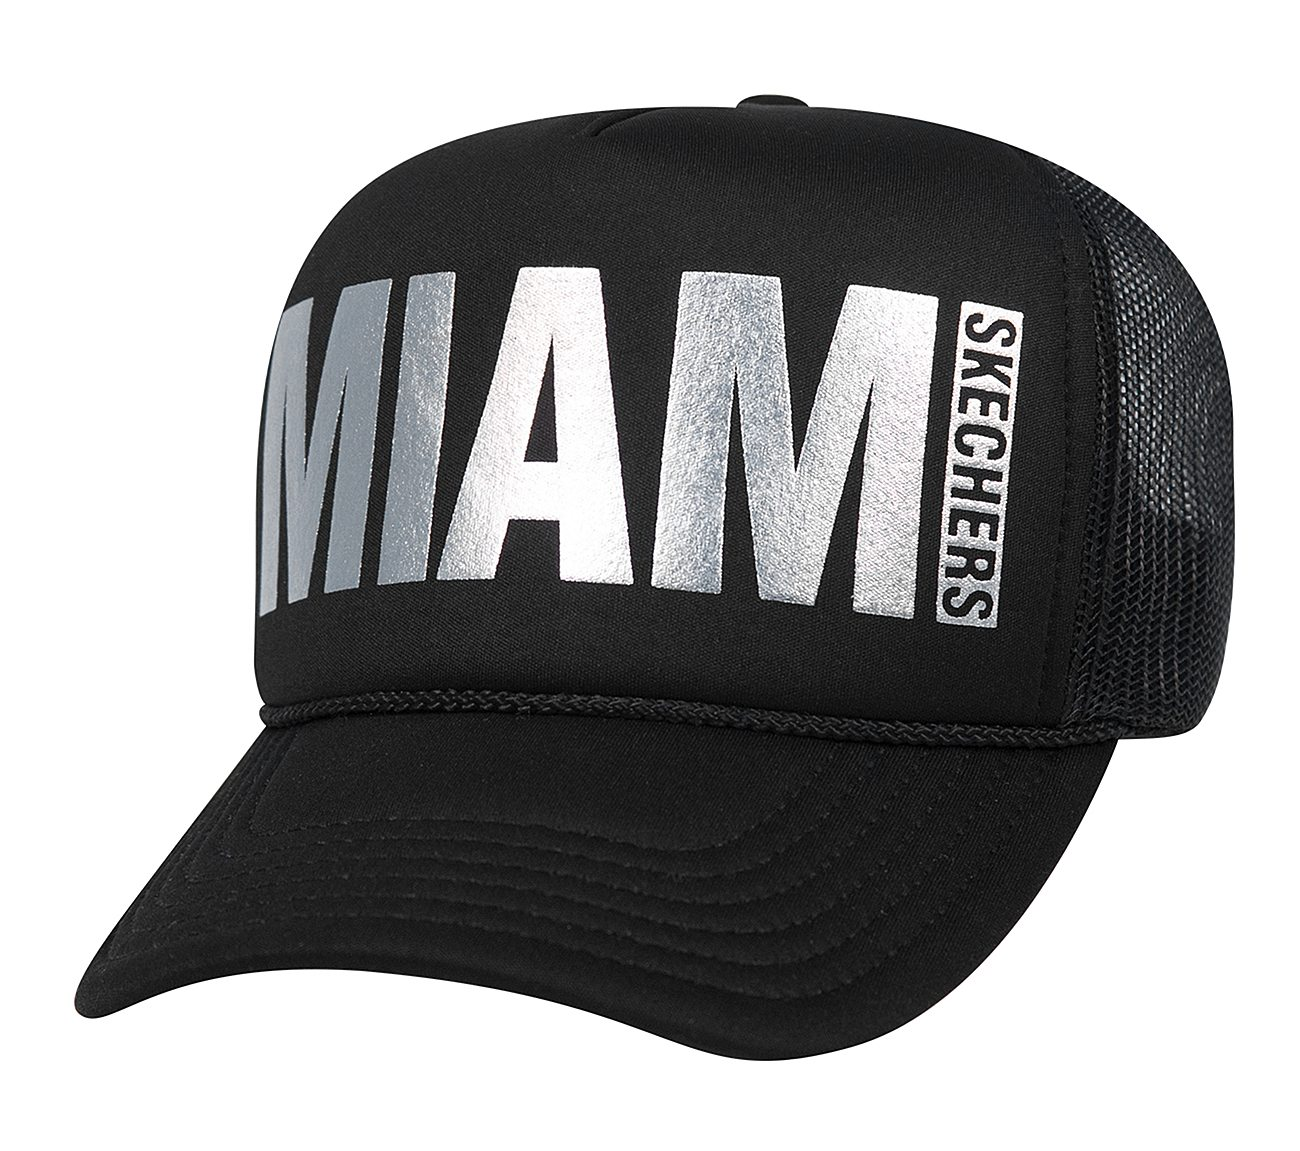 City Hat - Miami